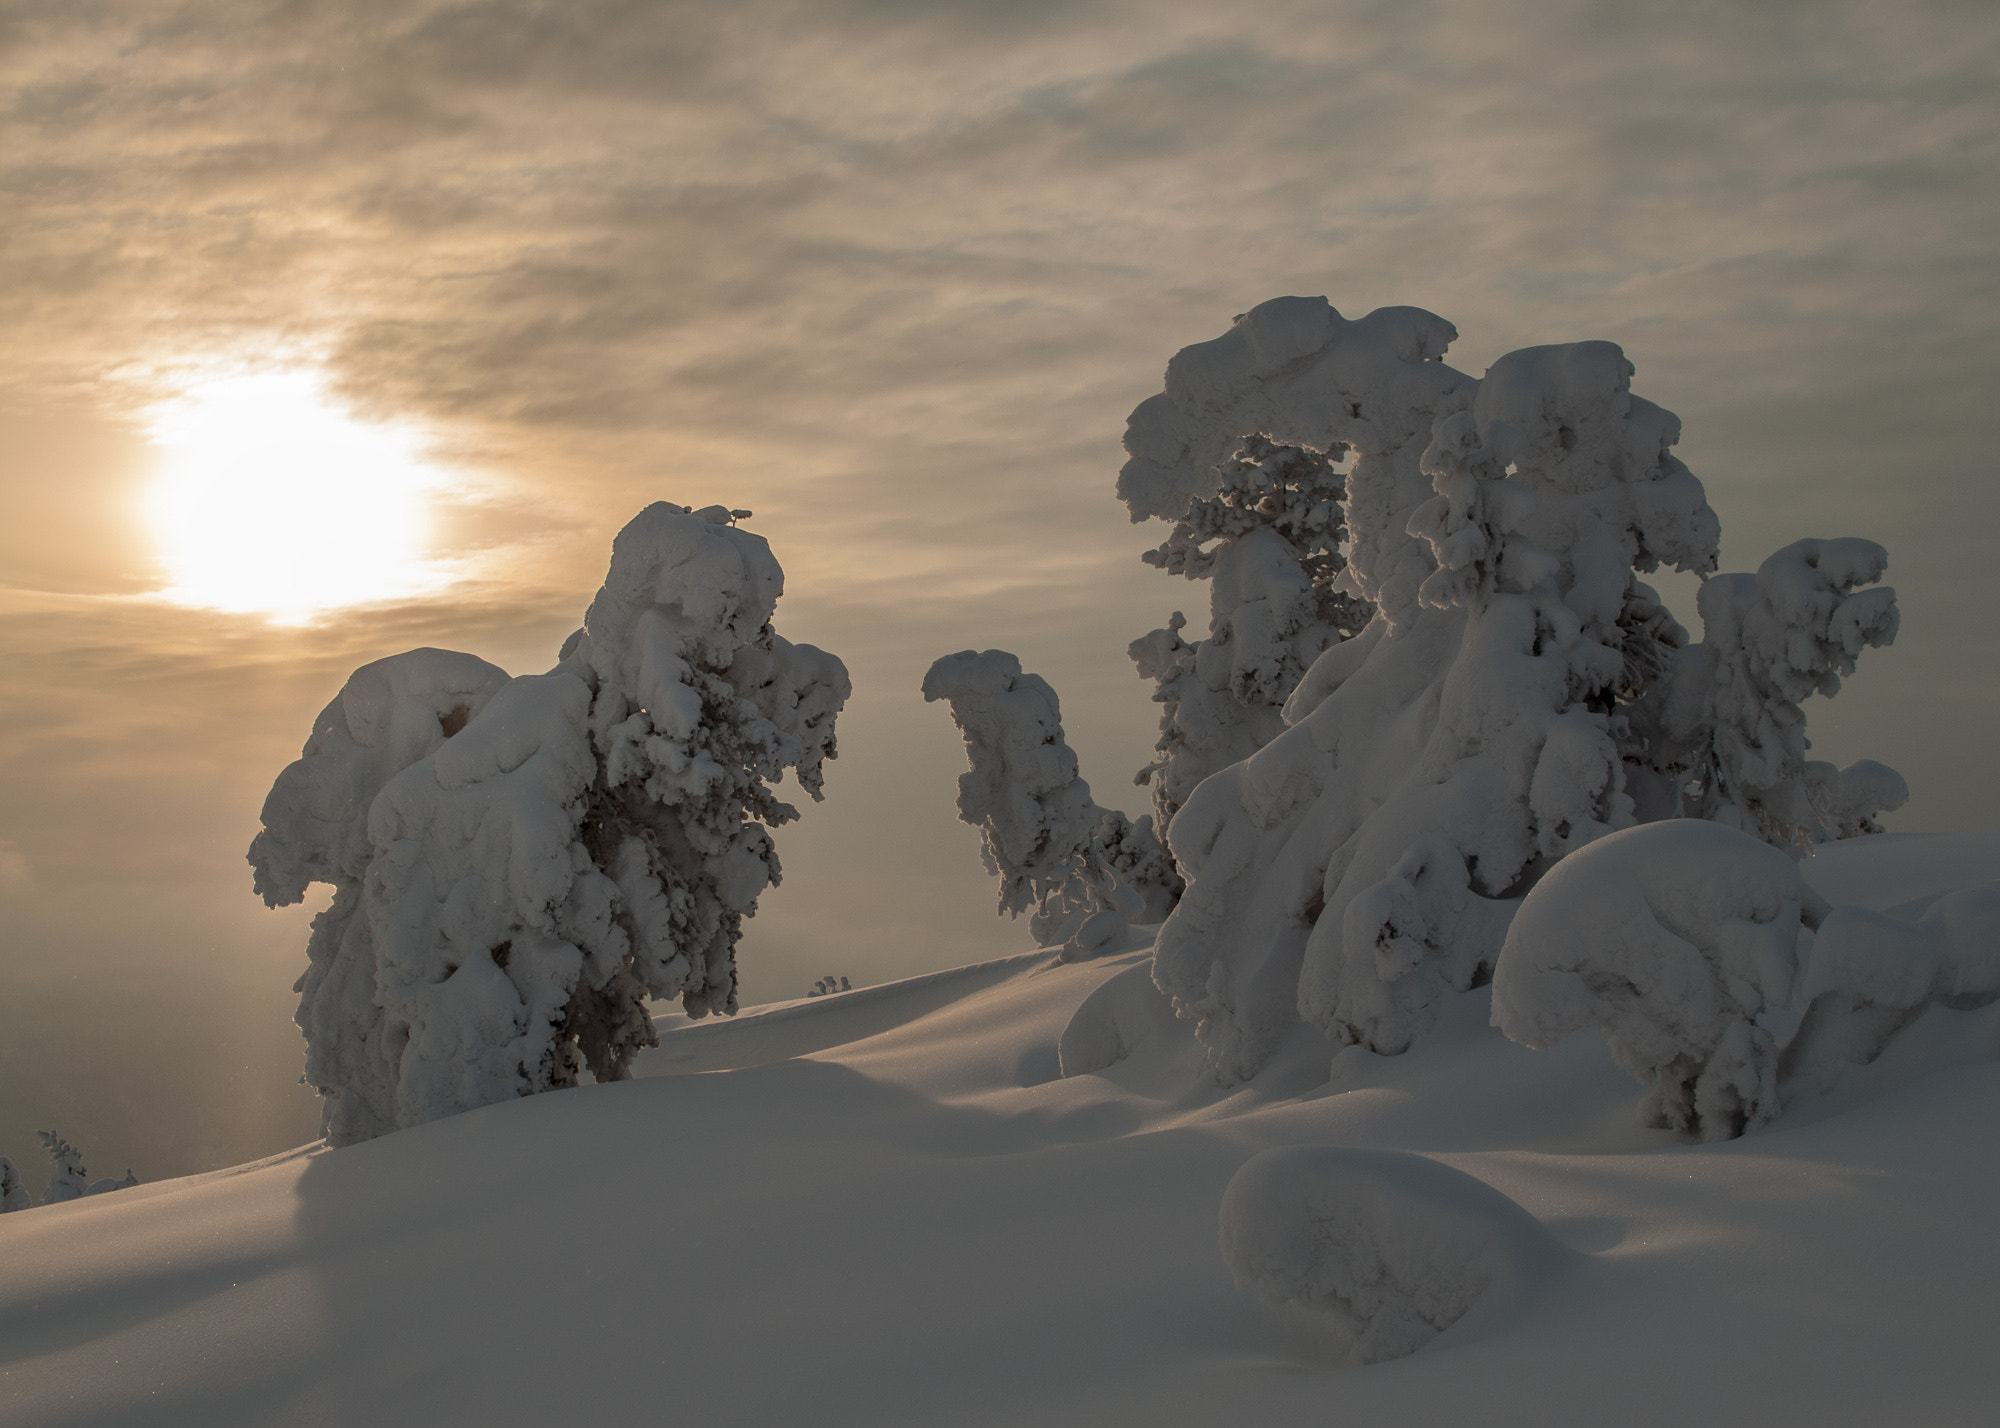 Photograph Snow can create many shapes by Odd Smedsrud on 500px